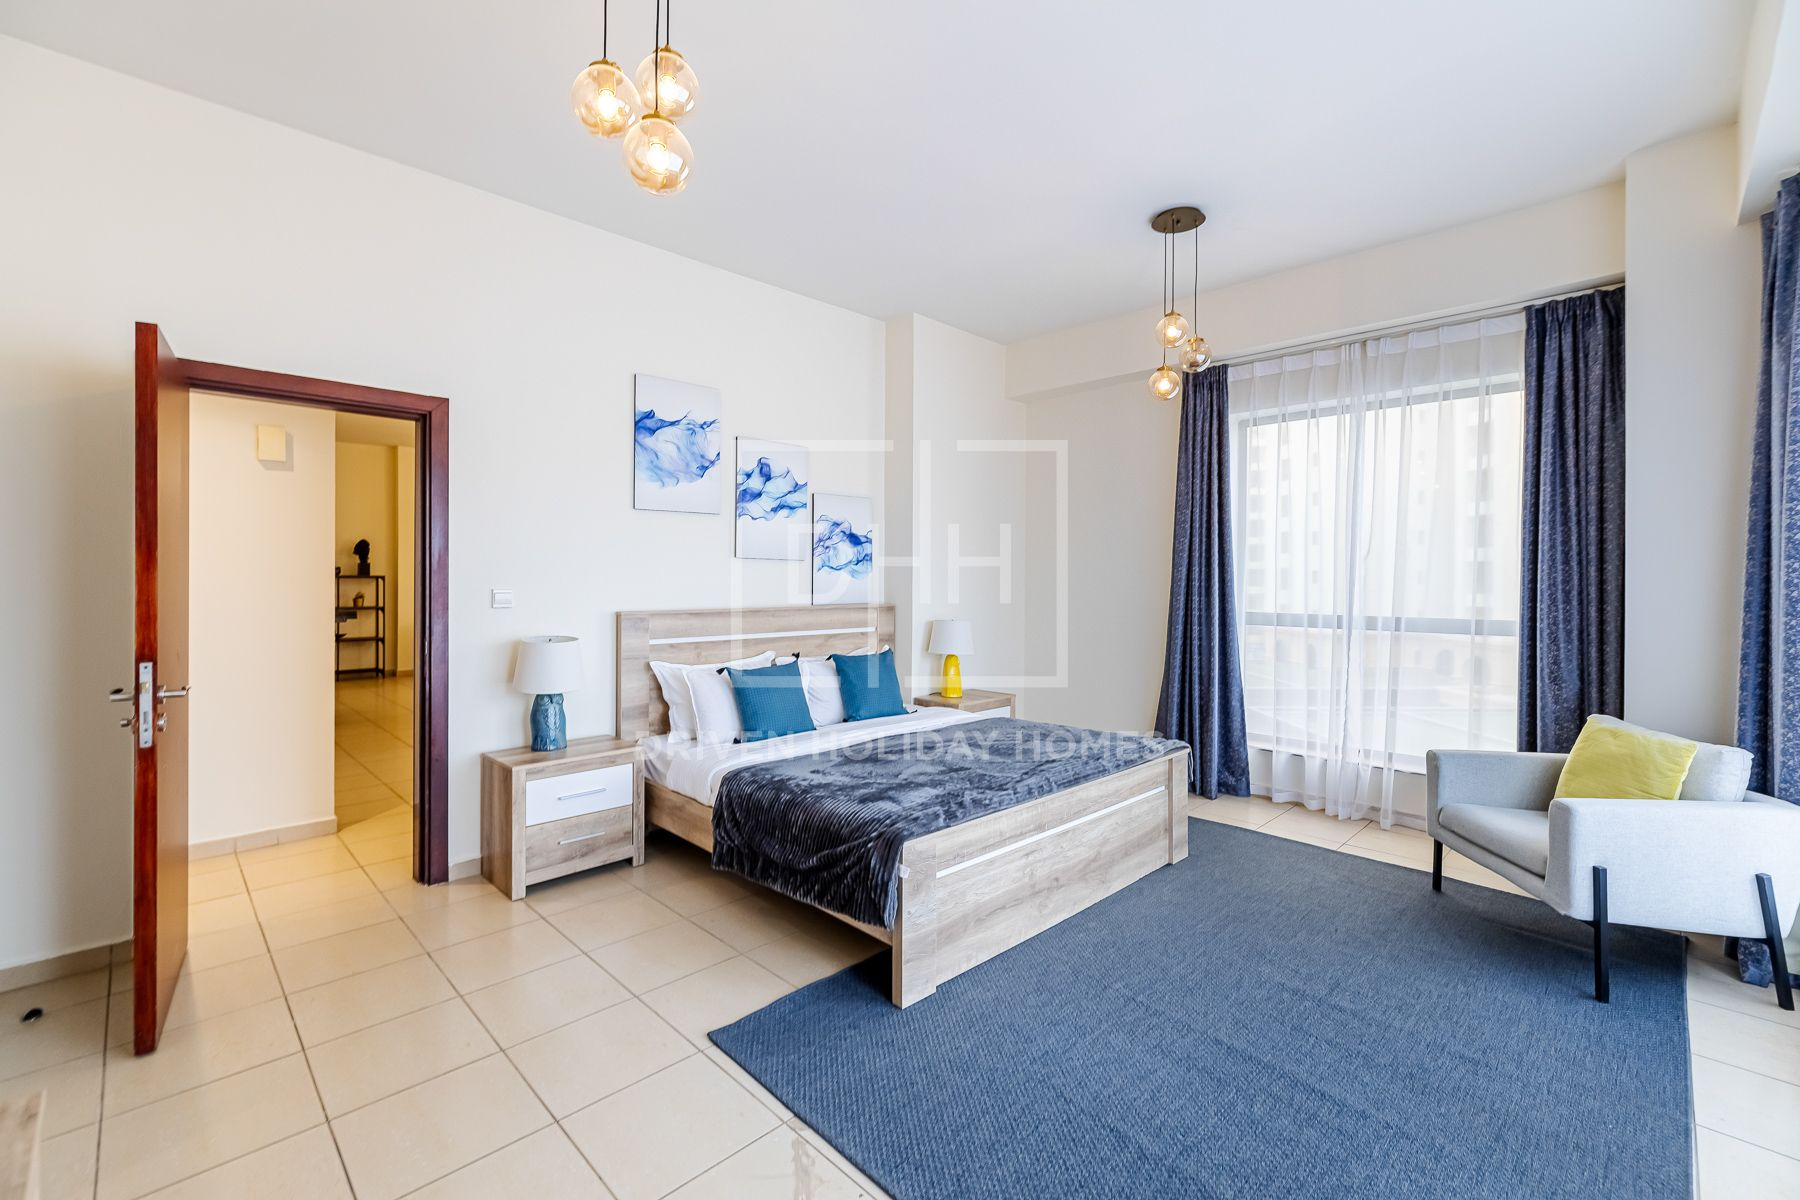 Apartment for Rent in Rimal 3 - Jumeirah Beach Residence